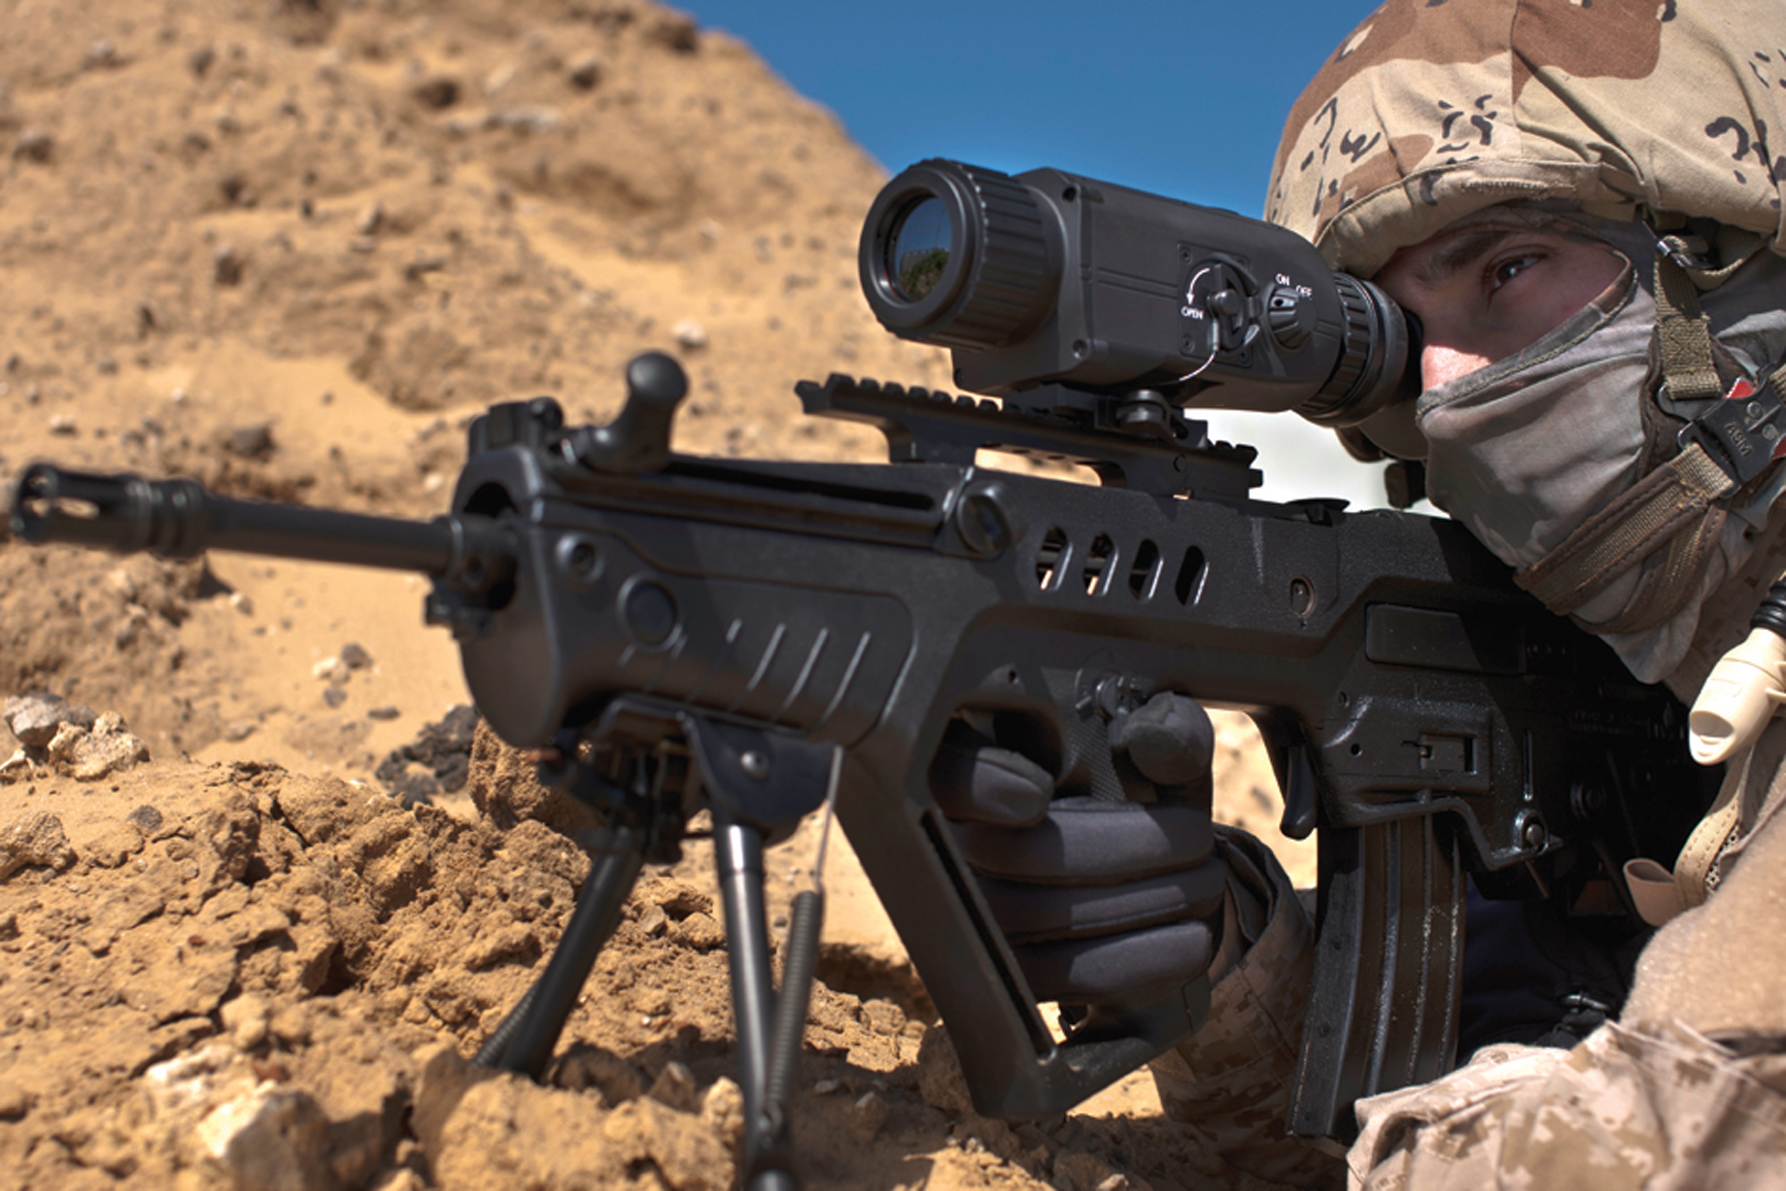 Meprolight unveils new weapon sights